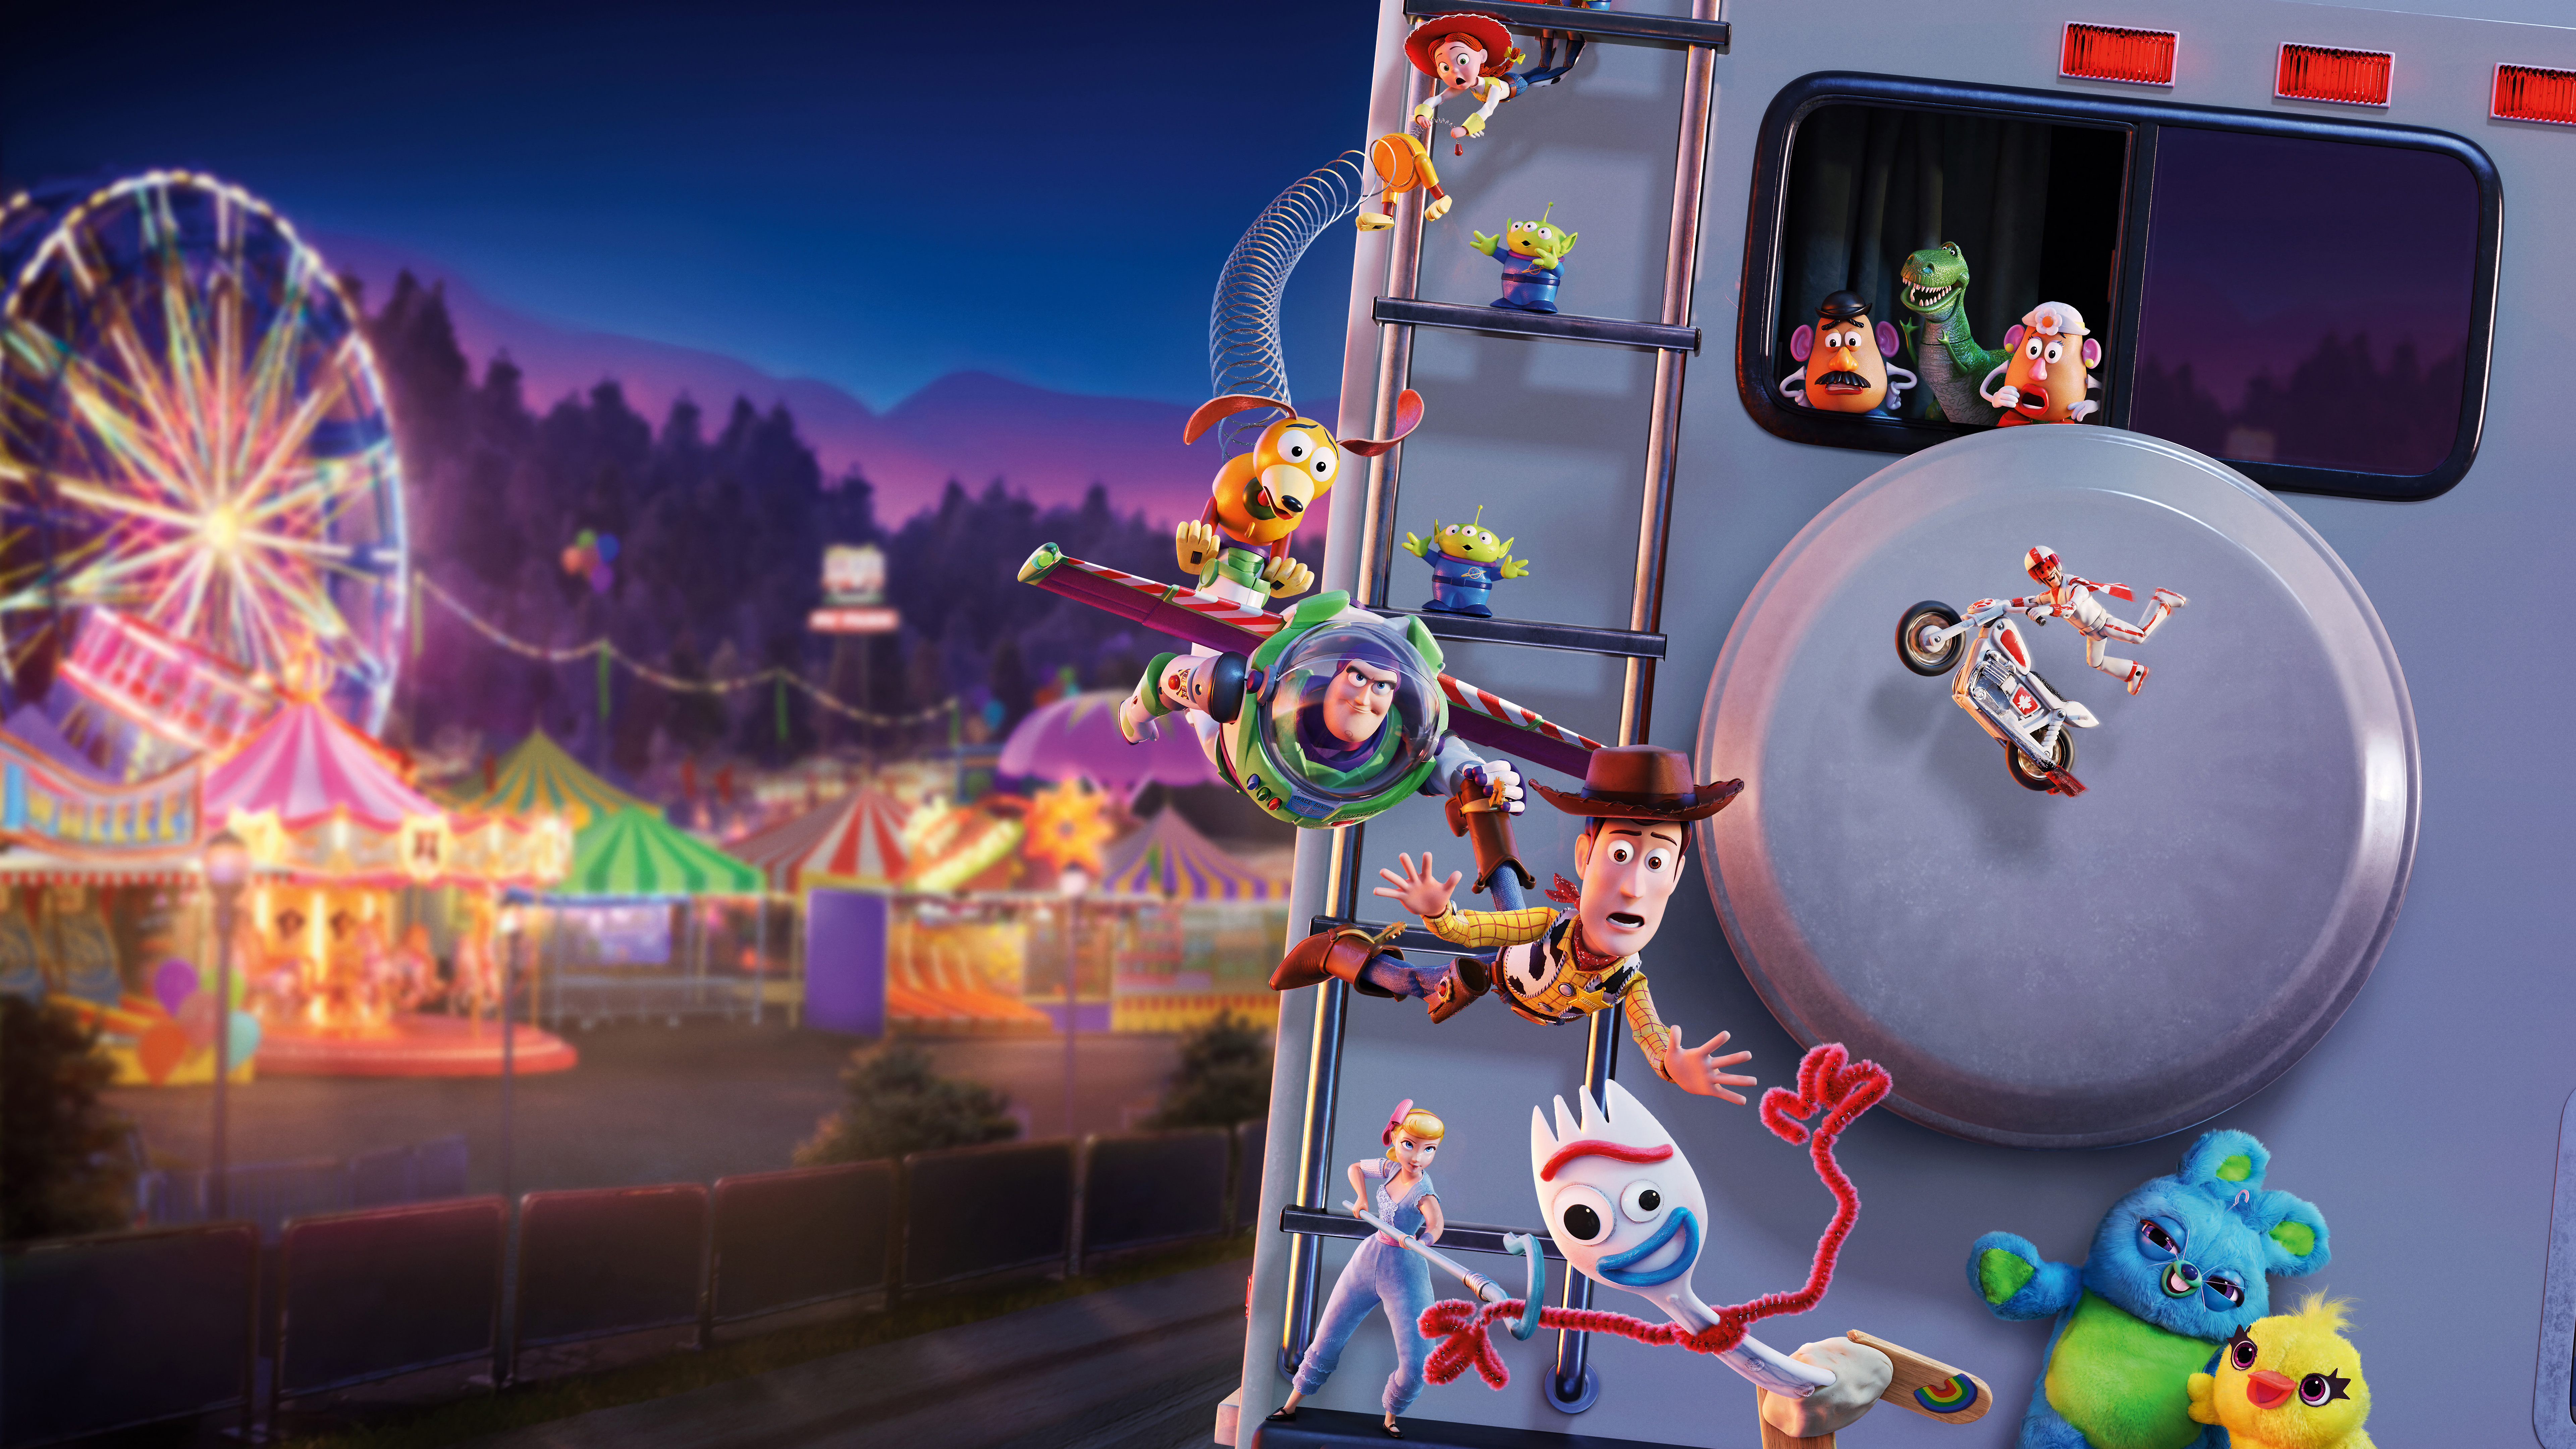 Toy Story 4 Characters 8K Wallpaper #14